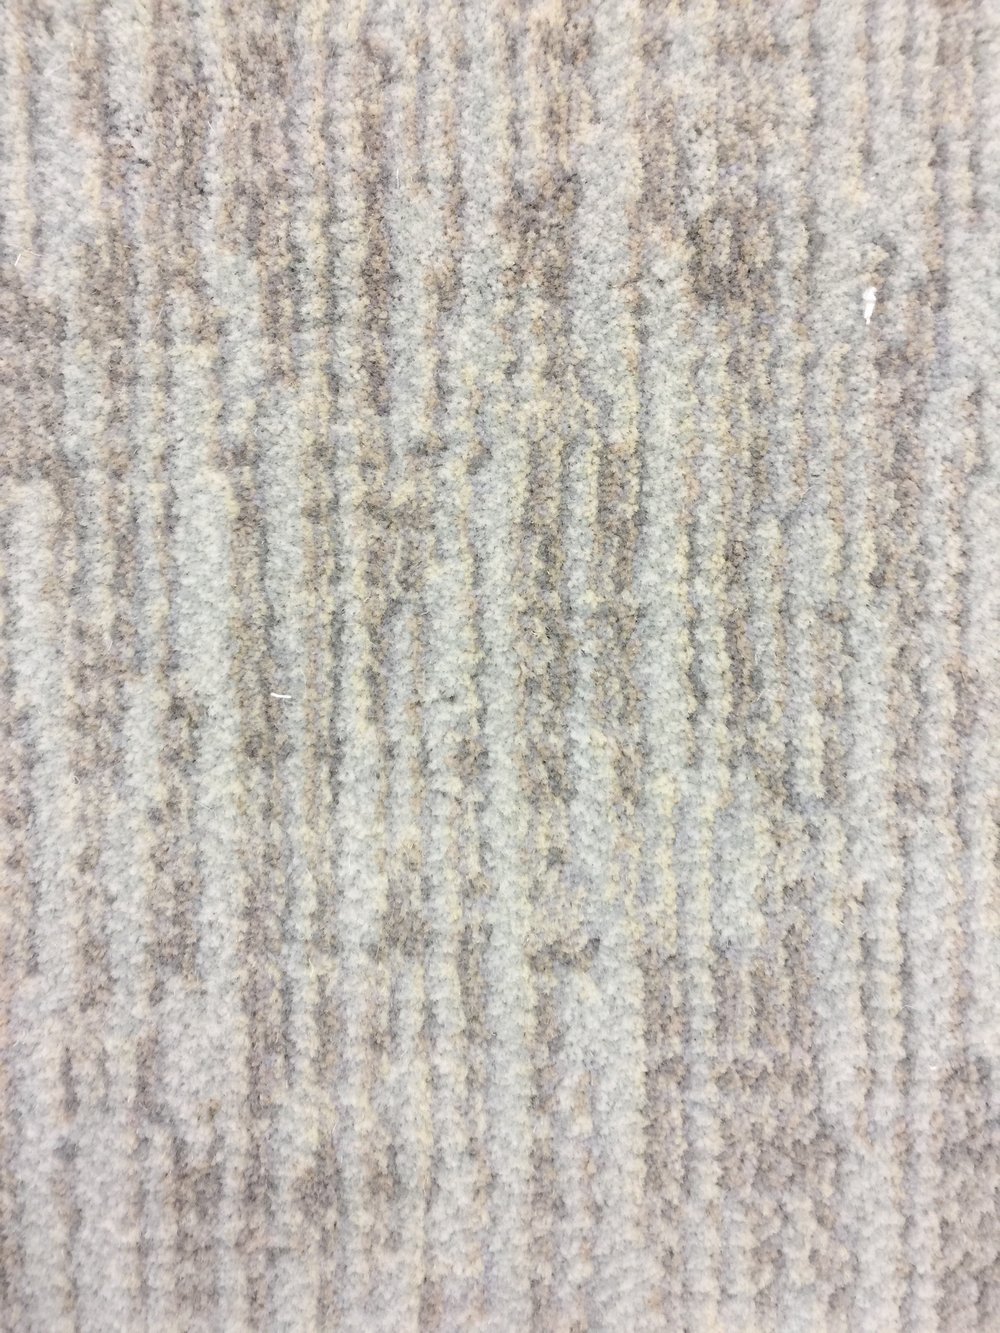 Proposed short, cut-pile carpet with cross-hatch pattern proposed for stair